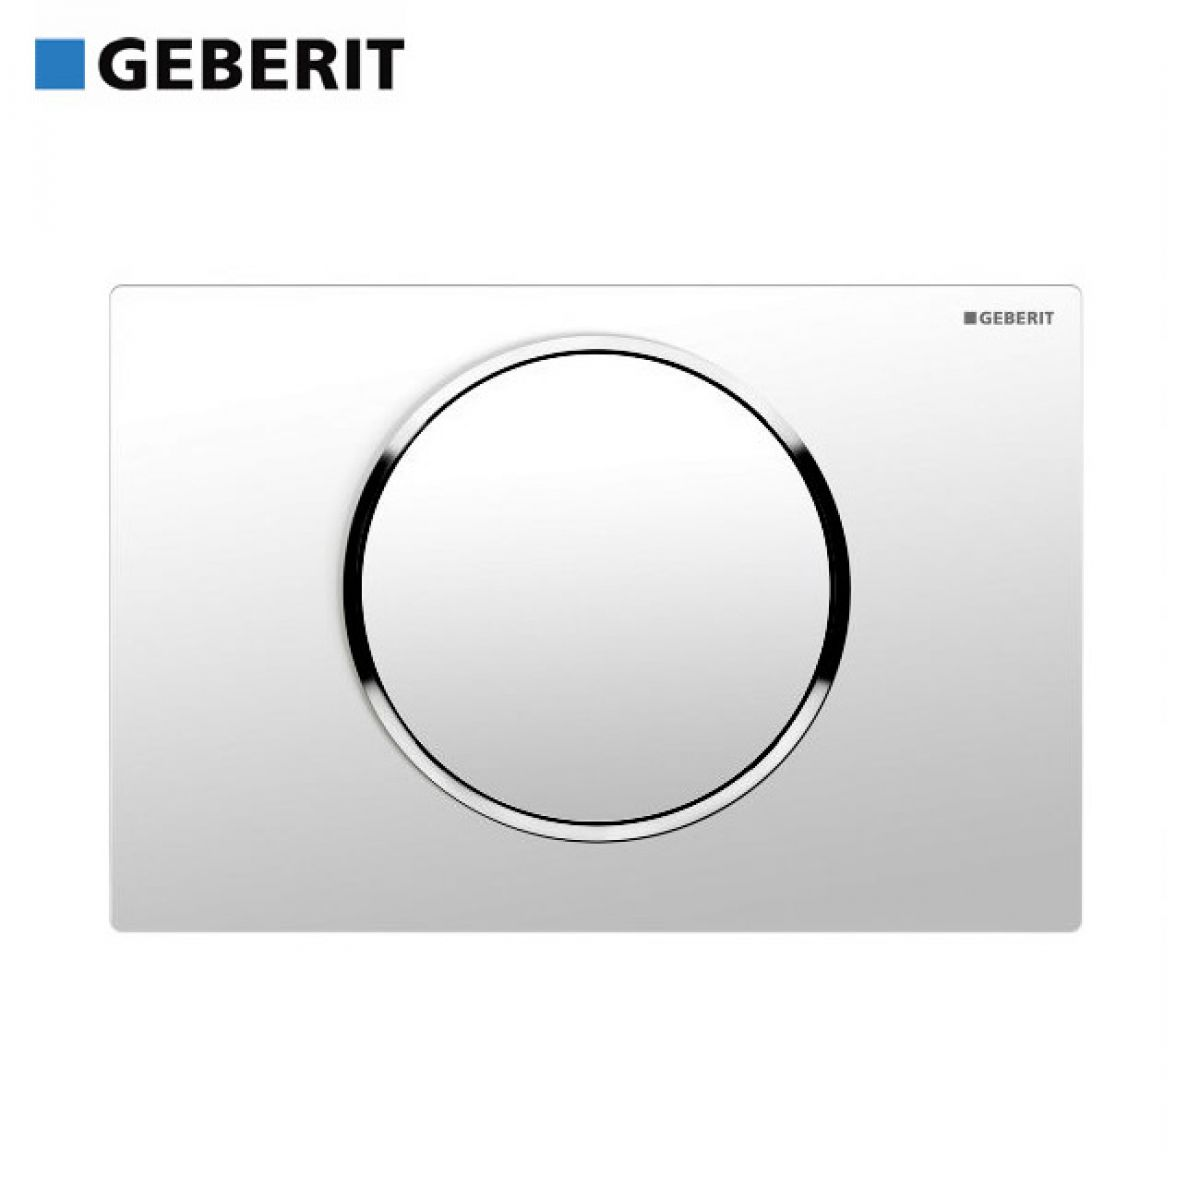 Geberit sigma 10 single flush cistern plate uk bathrooms for Geberit flush